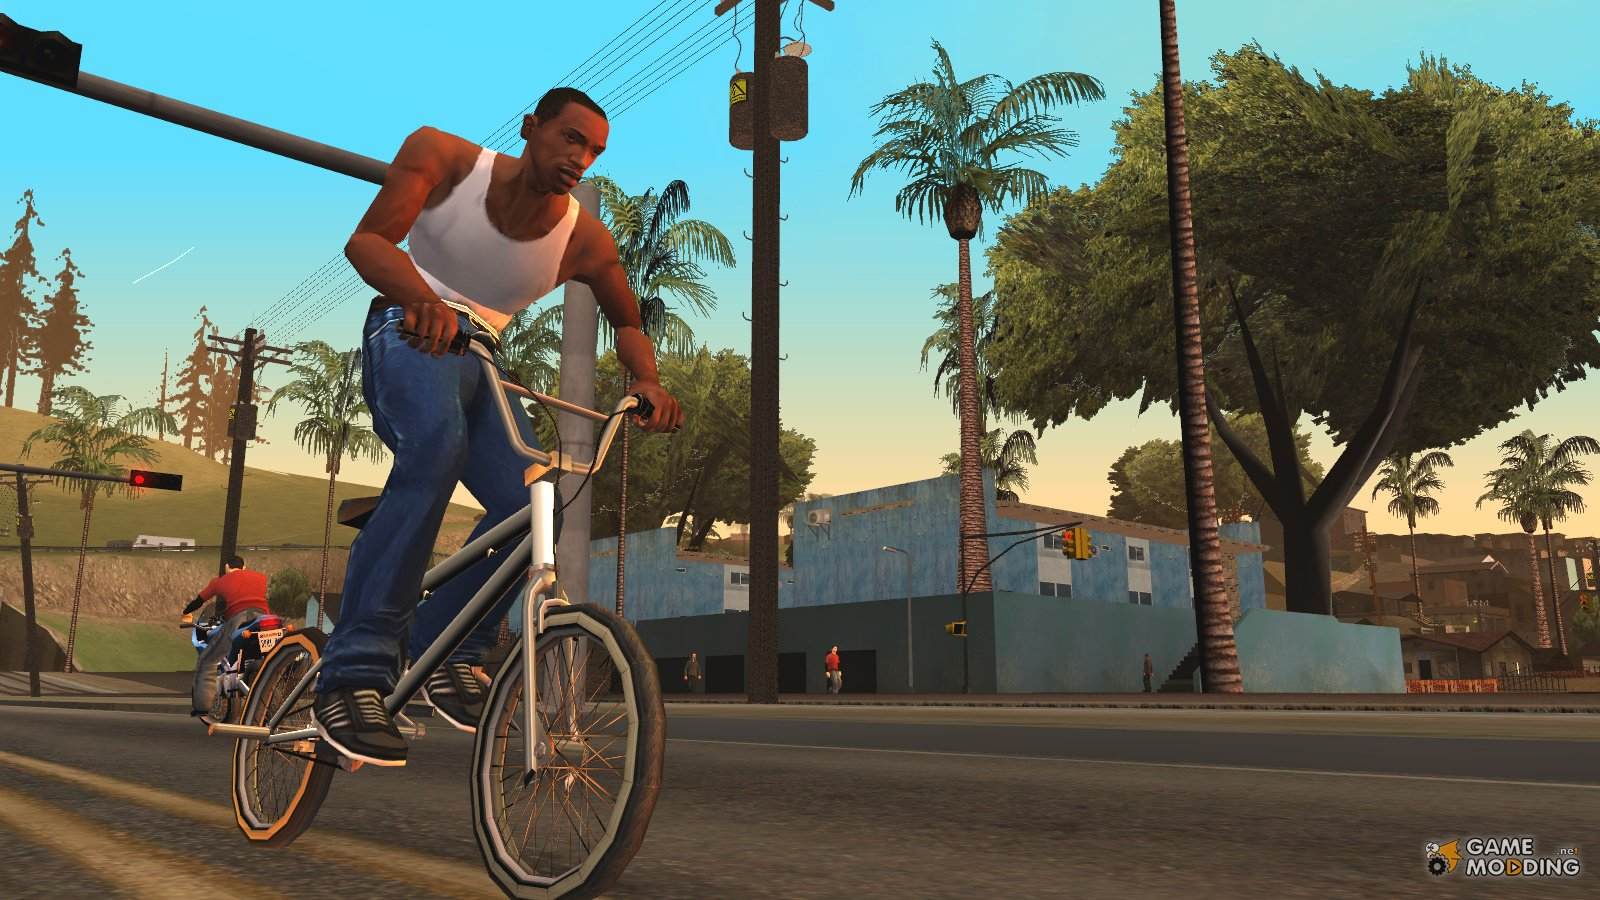 GTA San Andreas na Xbox One